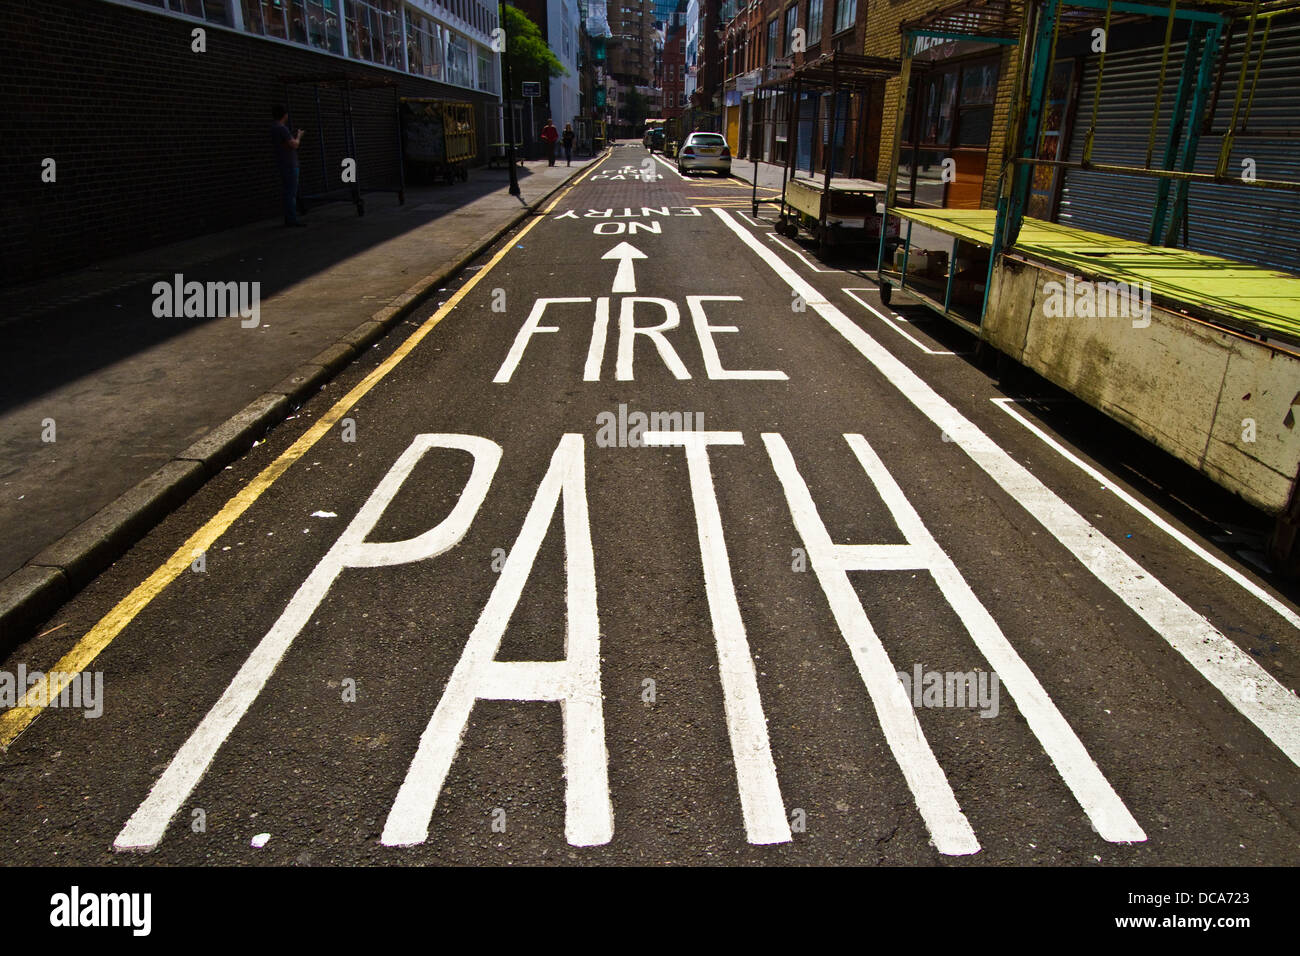 Fire path no entry road markings on Leather lane in London - Stock Image